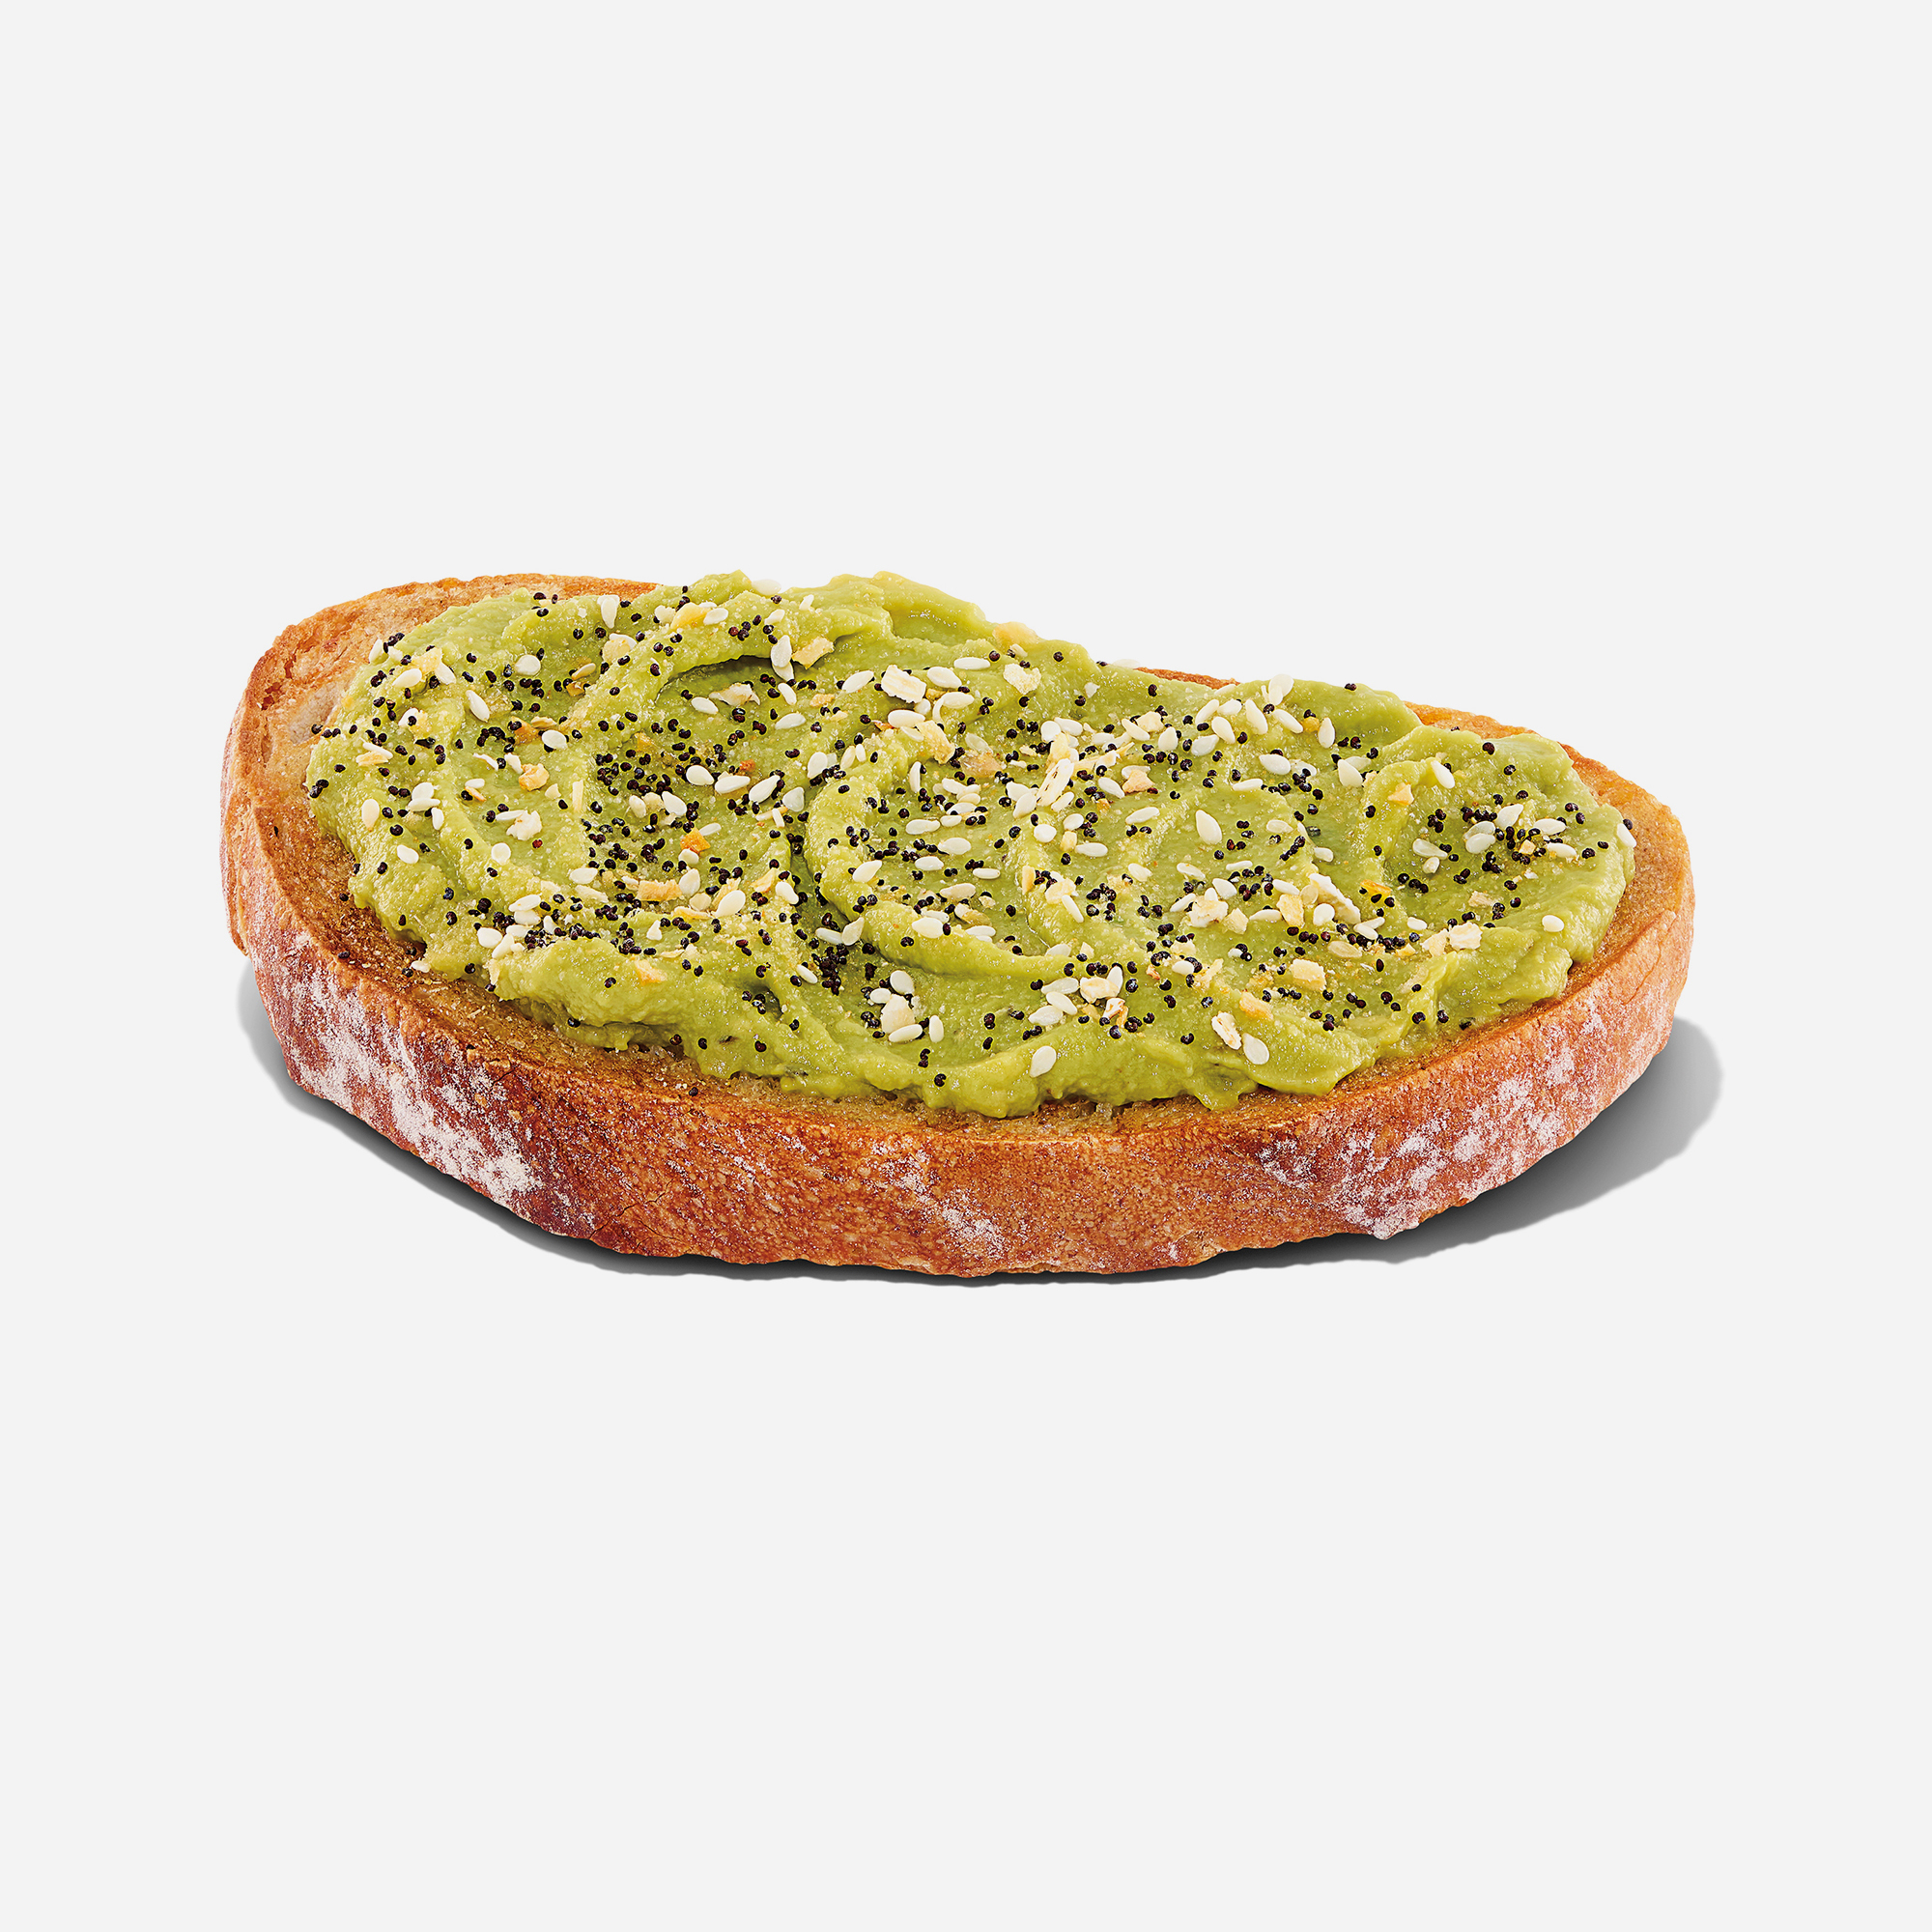 Dunkin' is now selling avocado toast